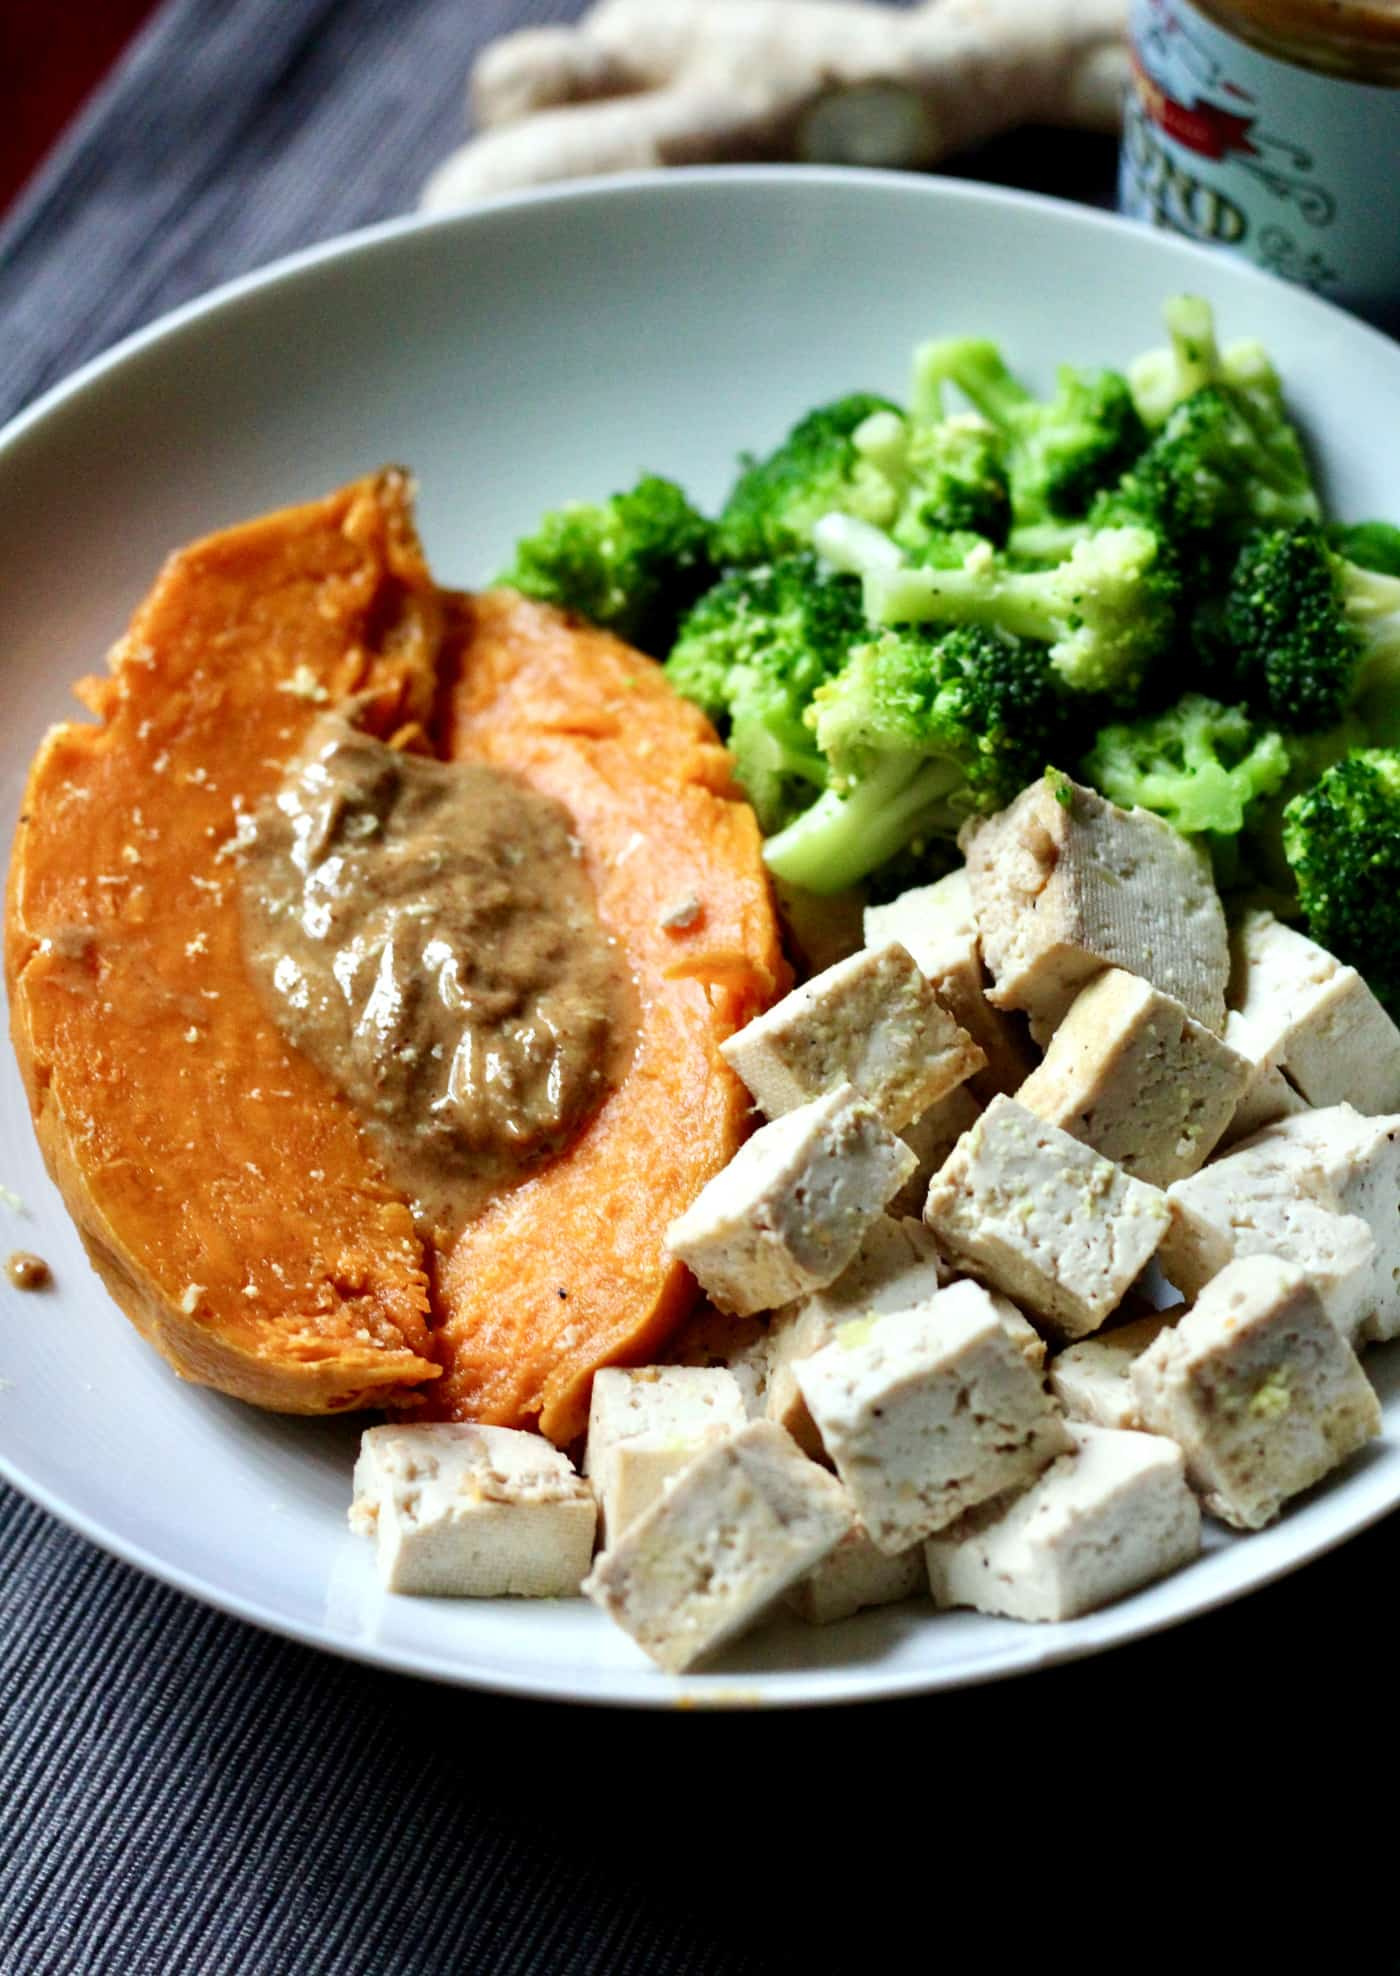 Almond Butter-Topped Sweet Potato with Tofu and Broccoli